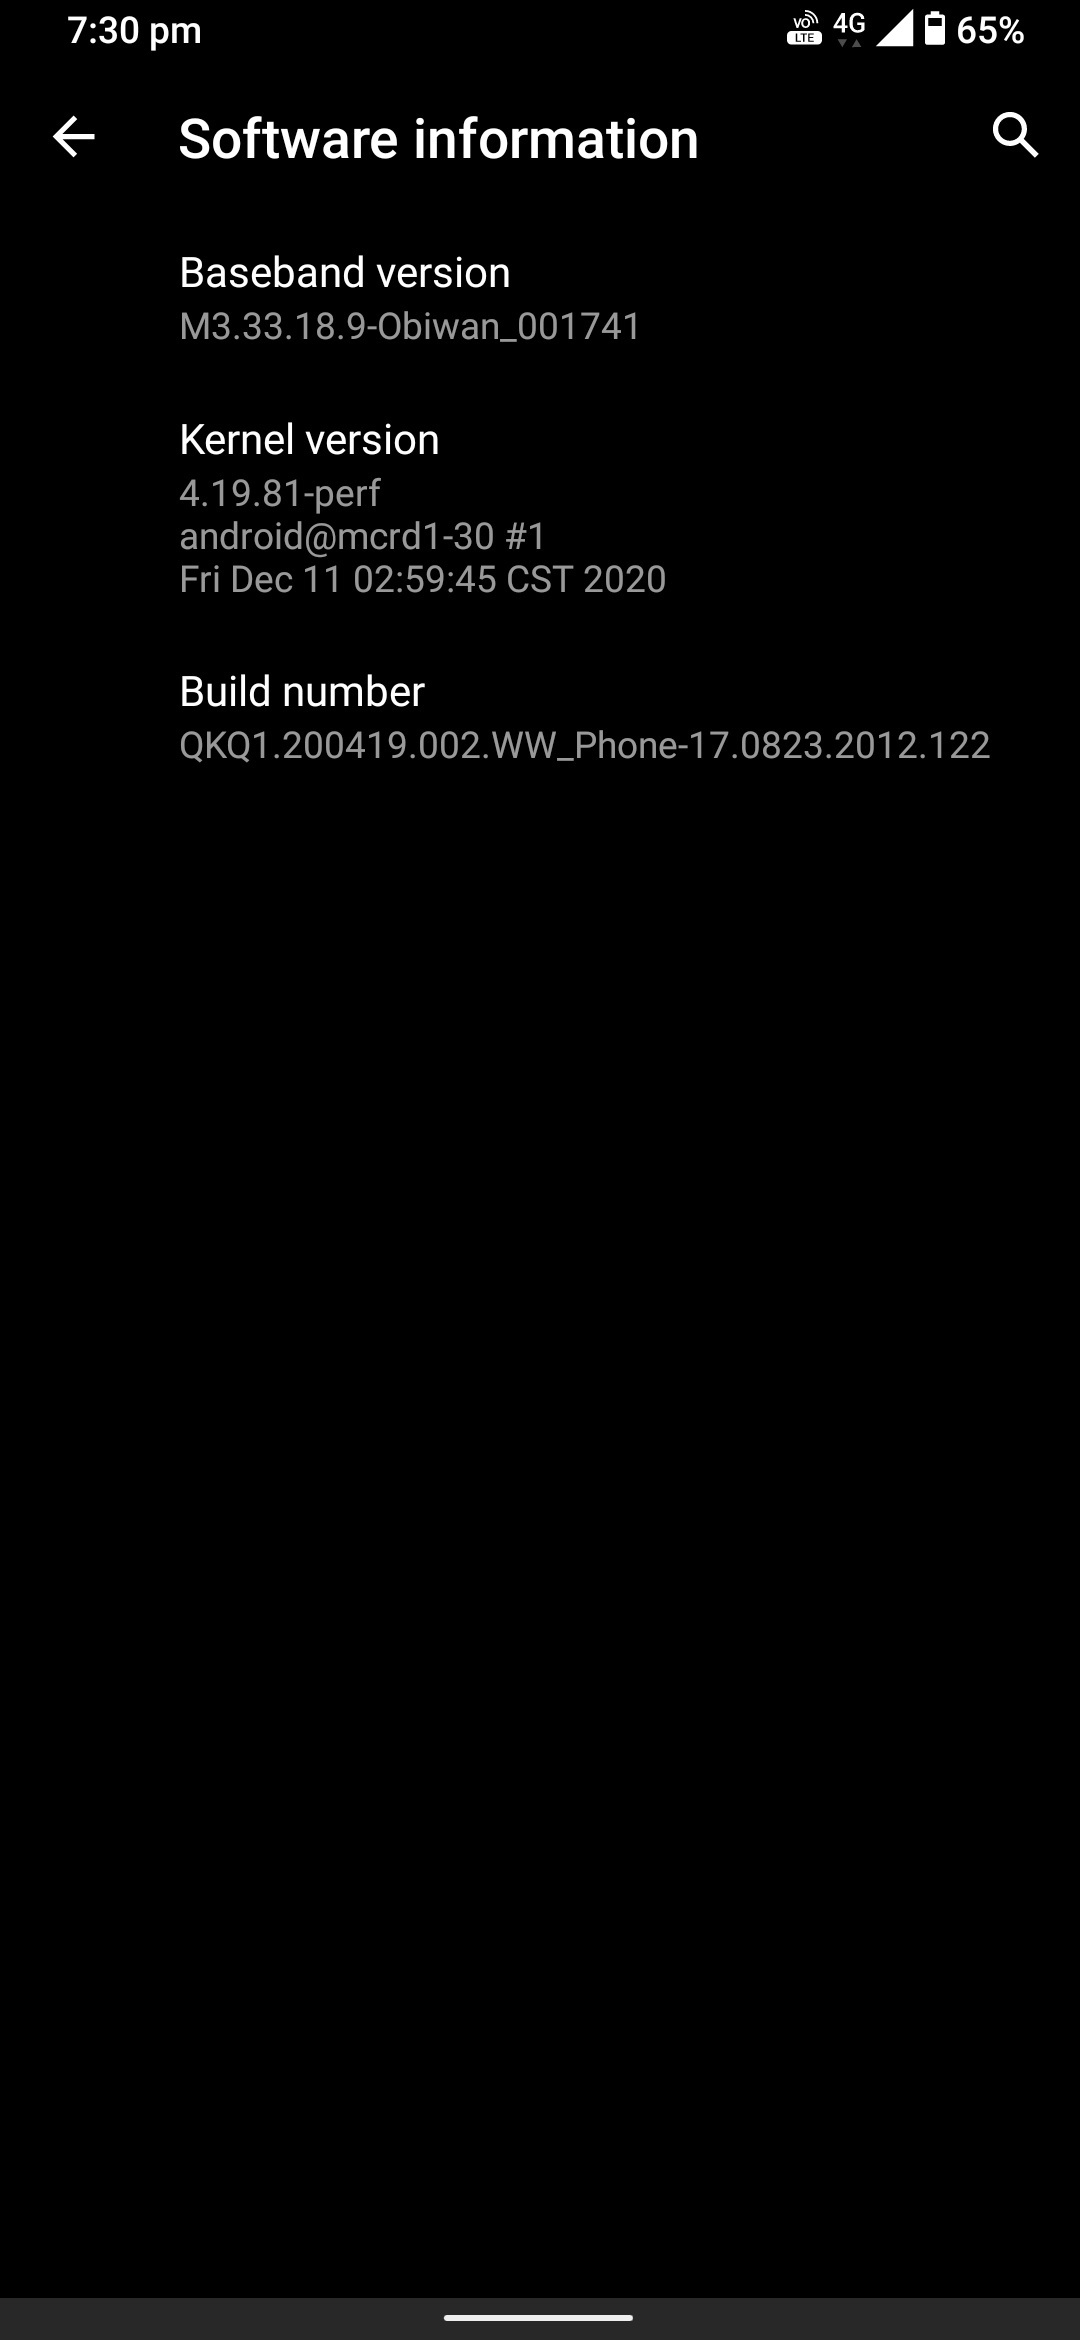 Screenshot_20201230-193031464.jpg